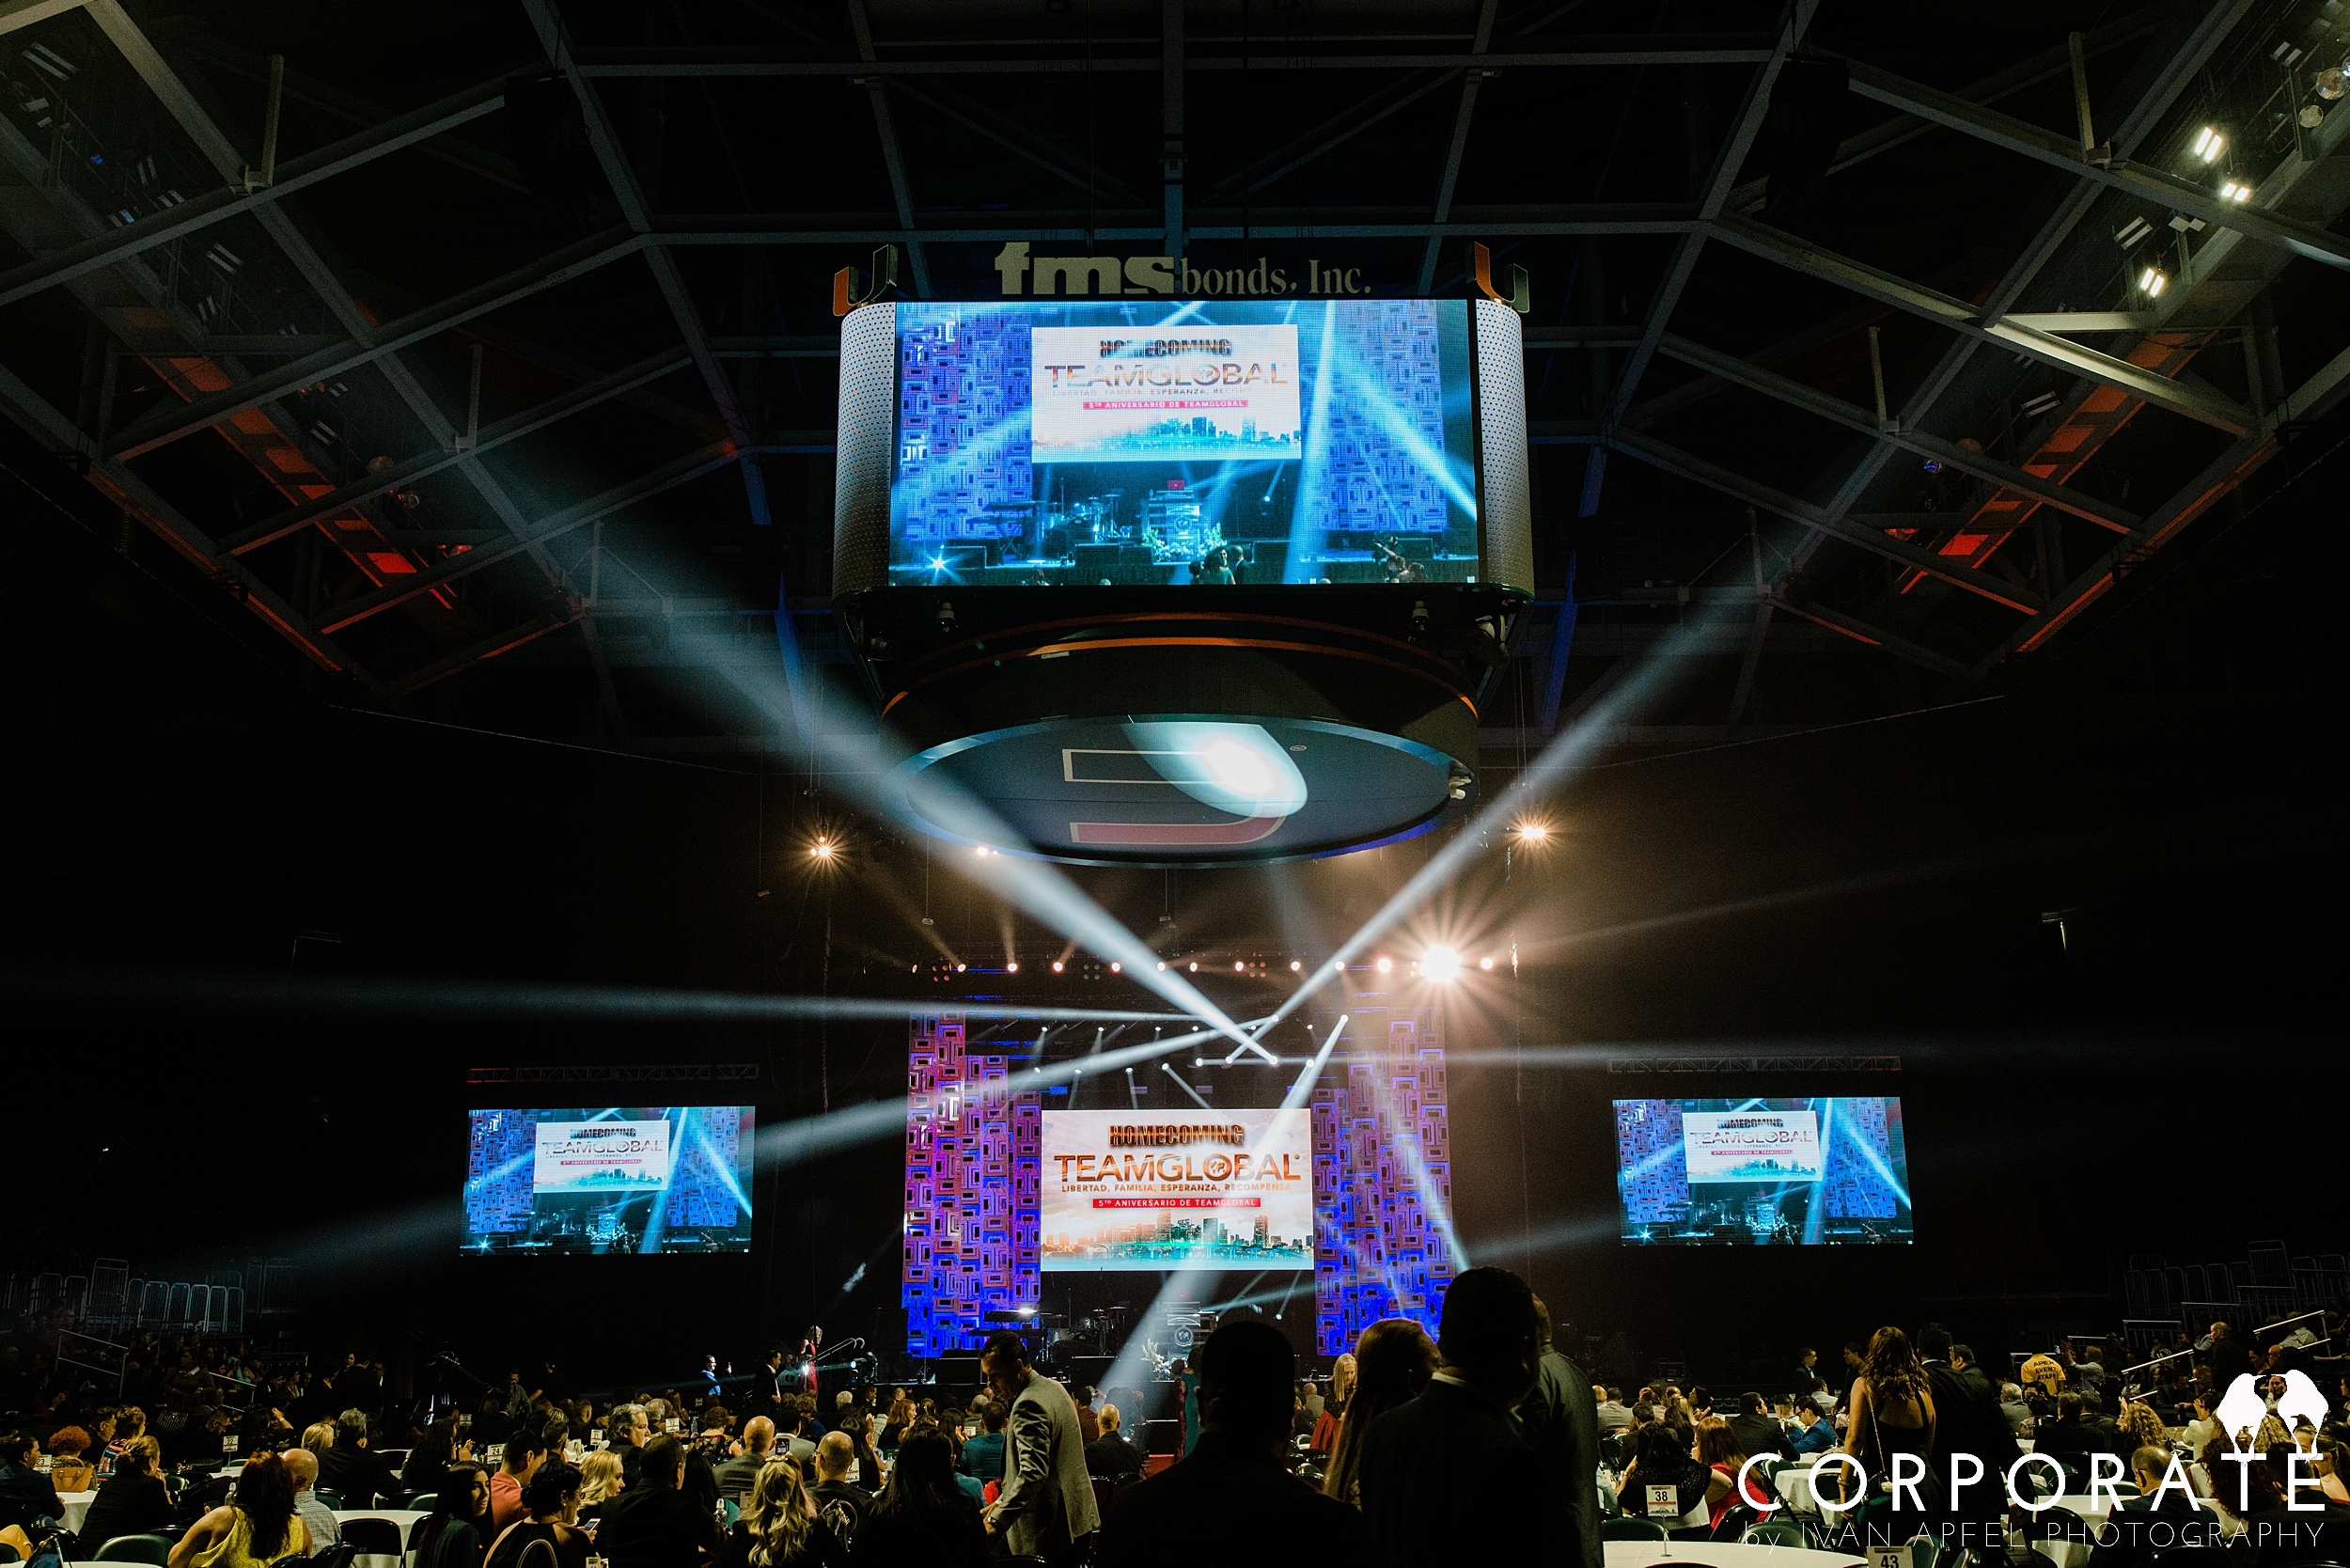 Miami Corporate Event Photographer Amway TeamGlobal_0001.jpg